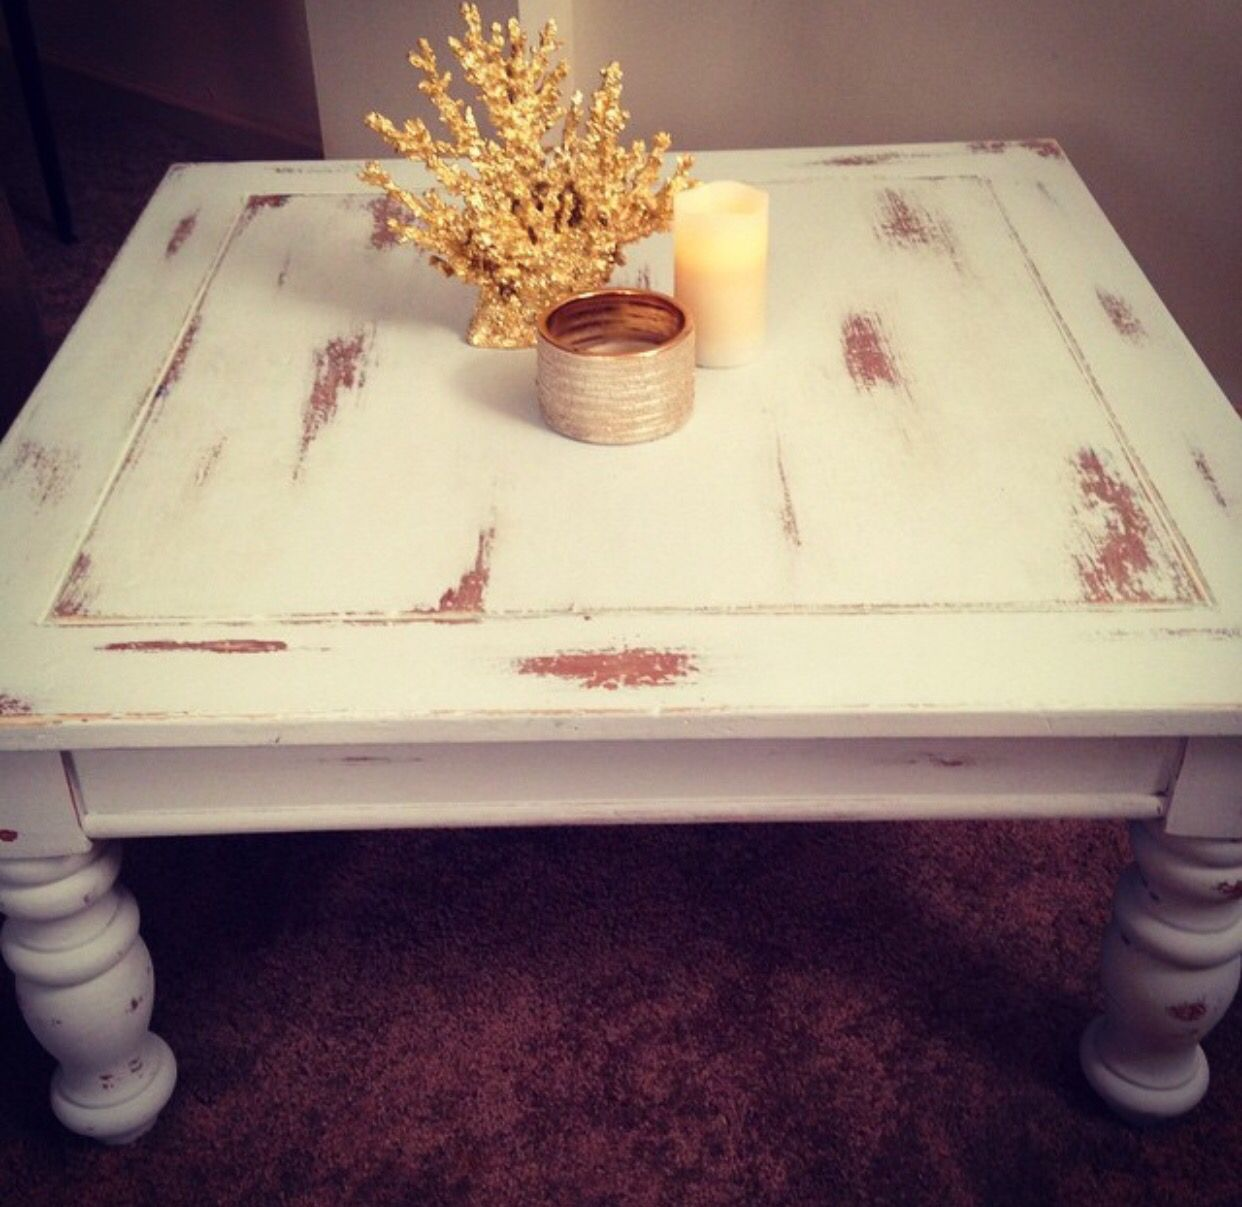 Decor Coffee Table Distressed Stockton Farm: Coastal Chic Coffee Table Furniture Flip. White Paint